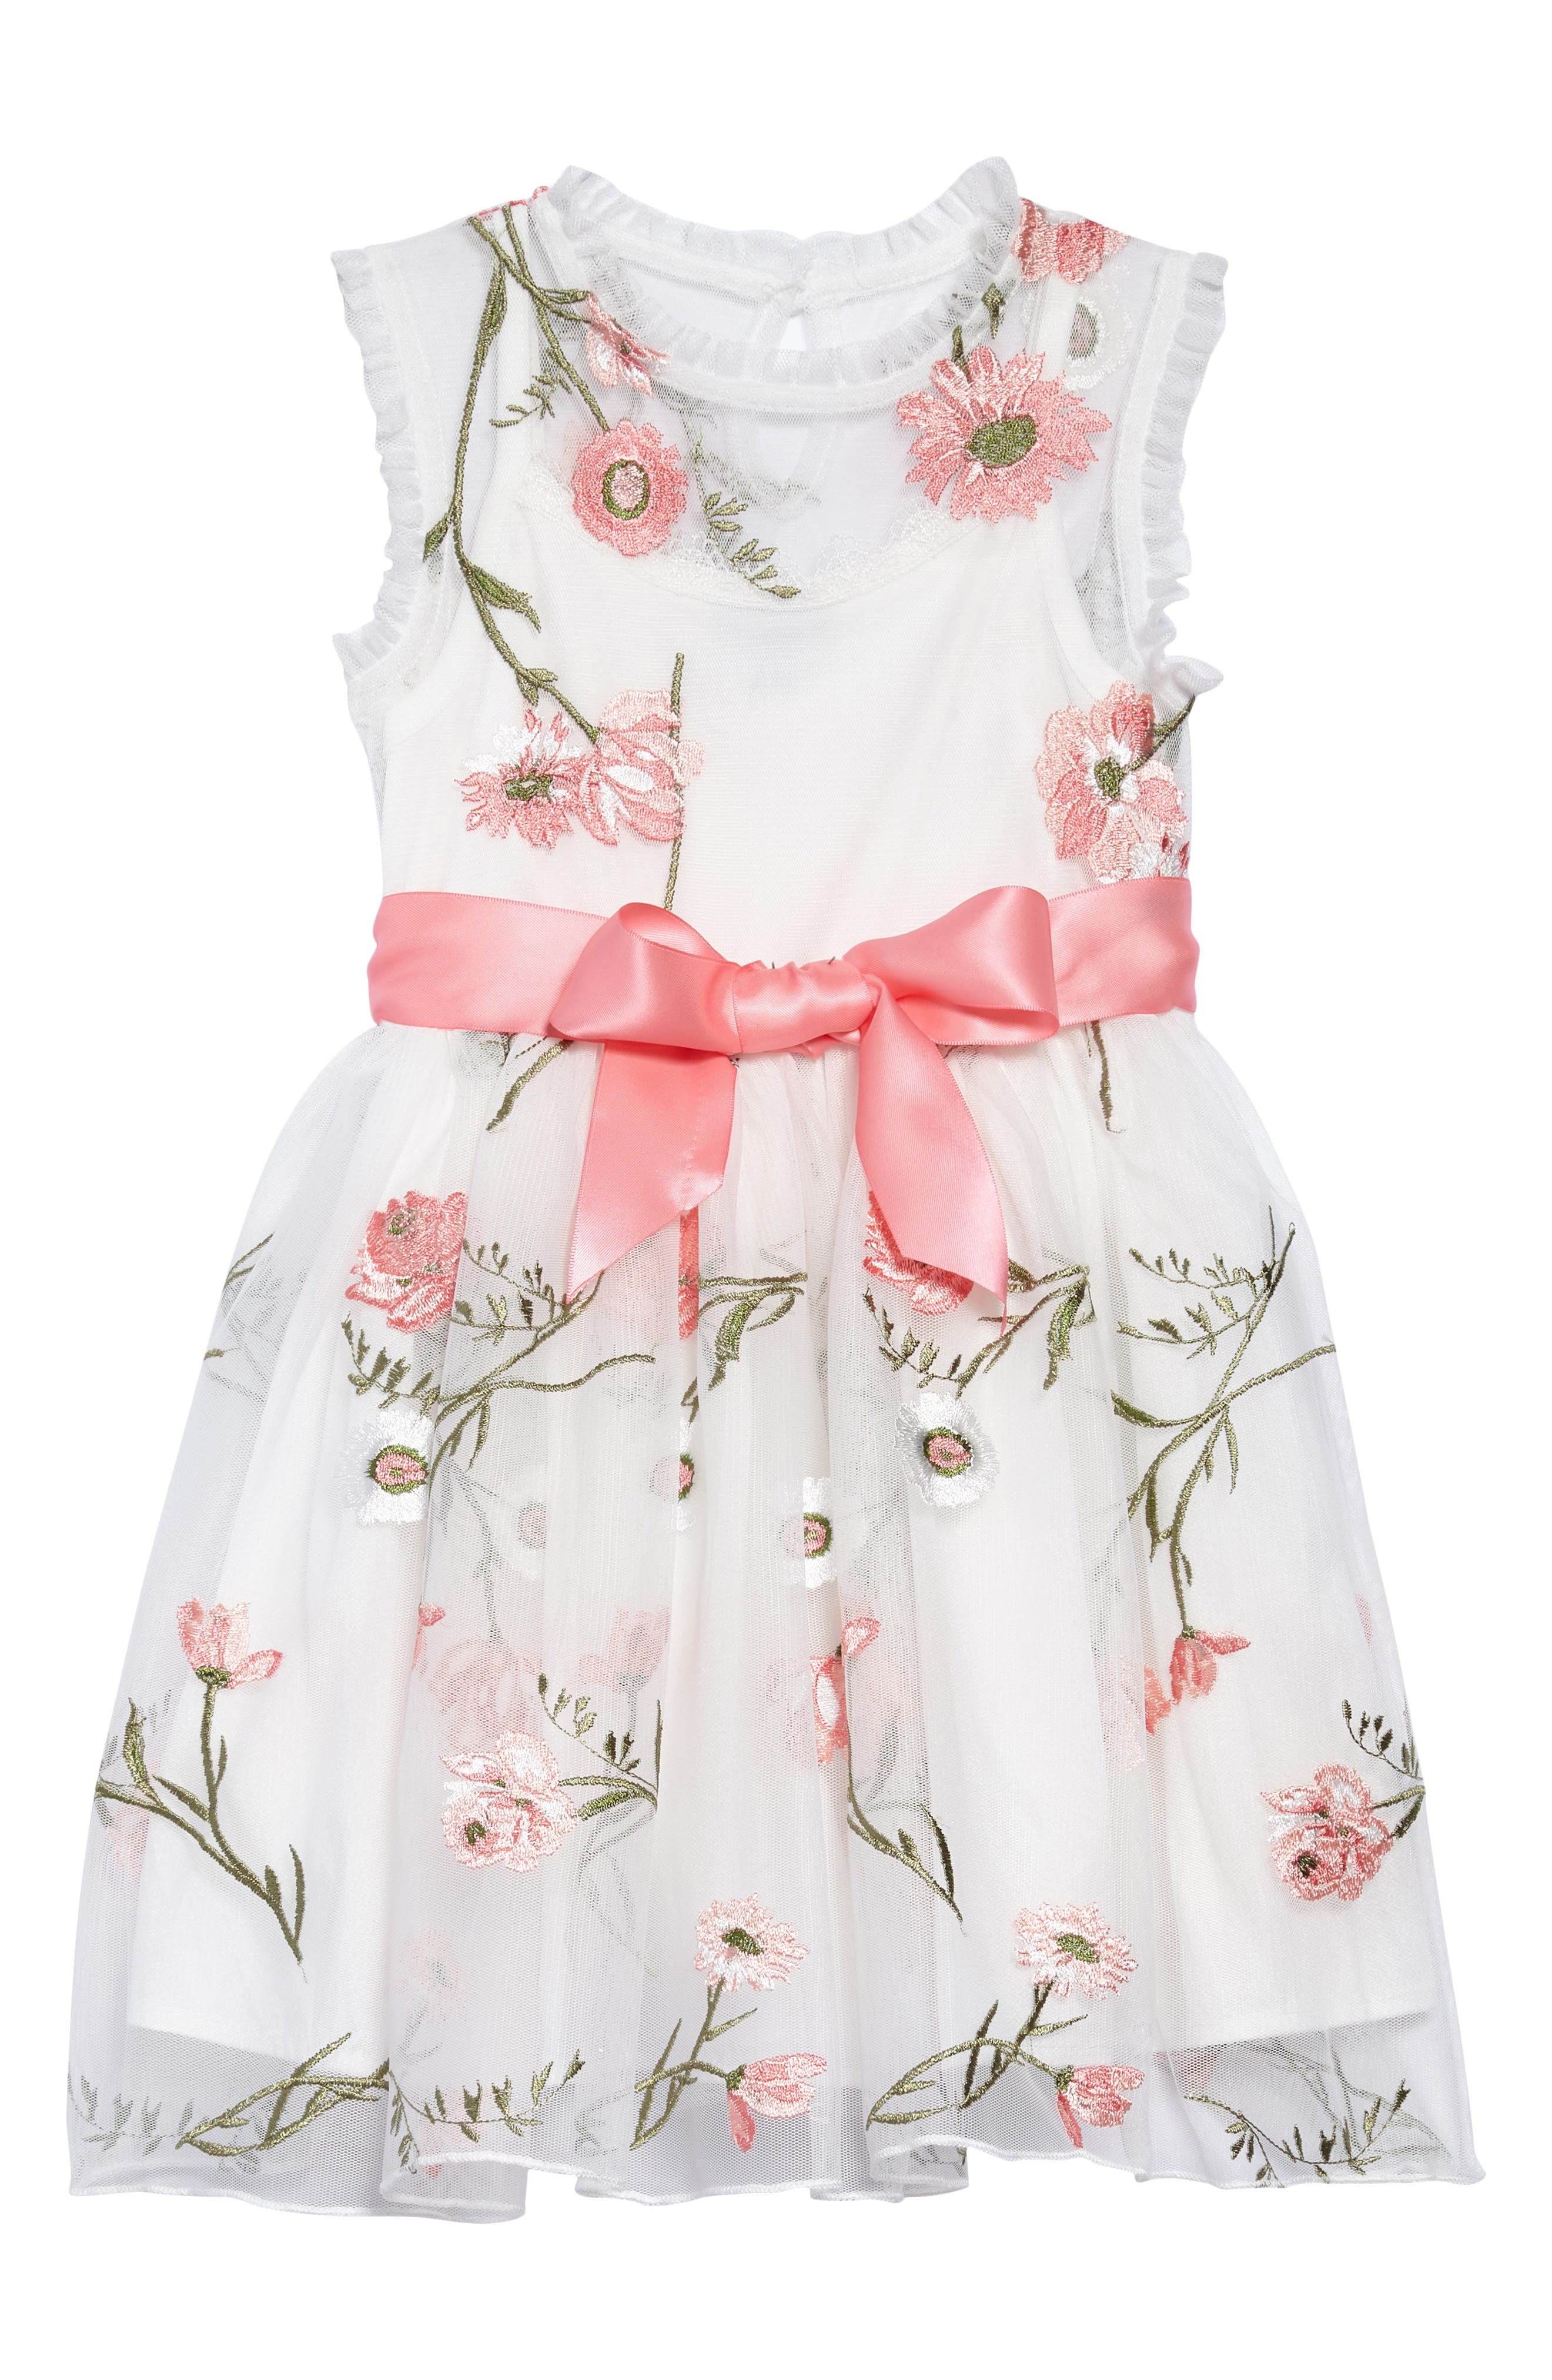 Embroidered Flower Dress,                             Main thumbnail 1, color,                             White/ Coral